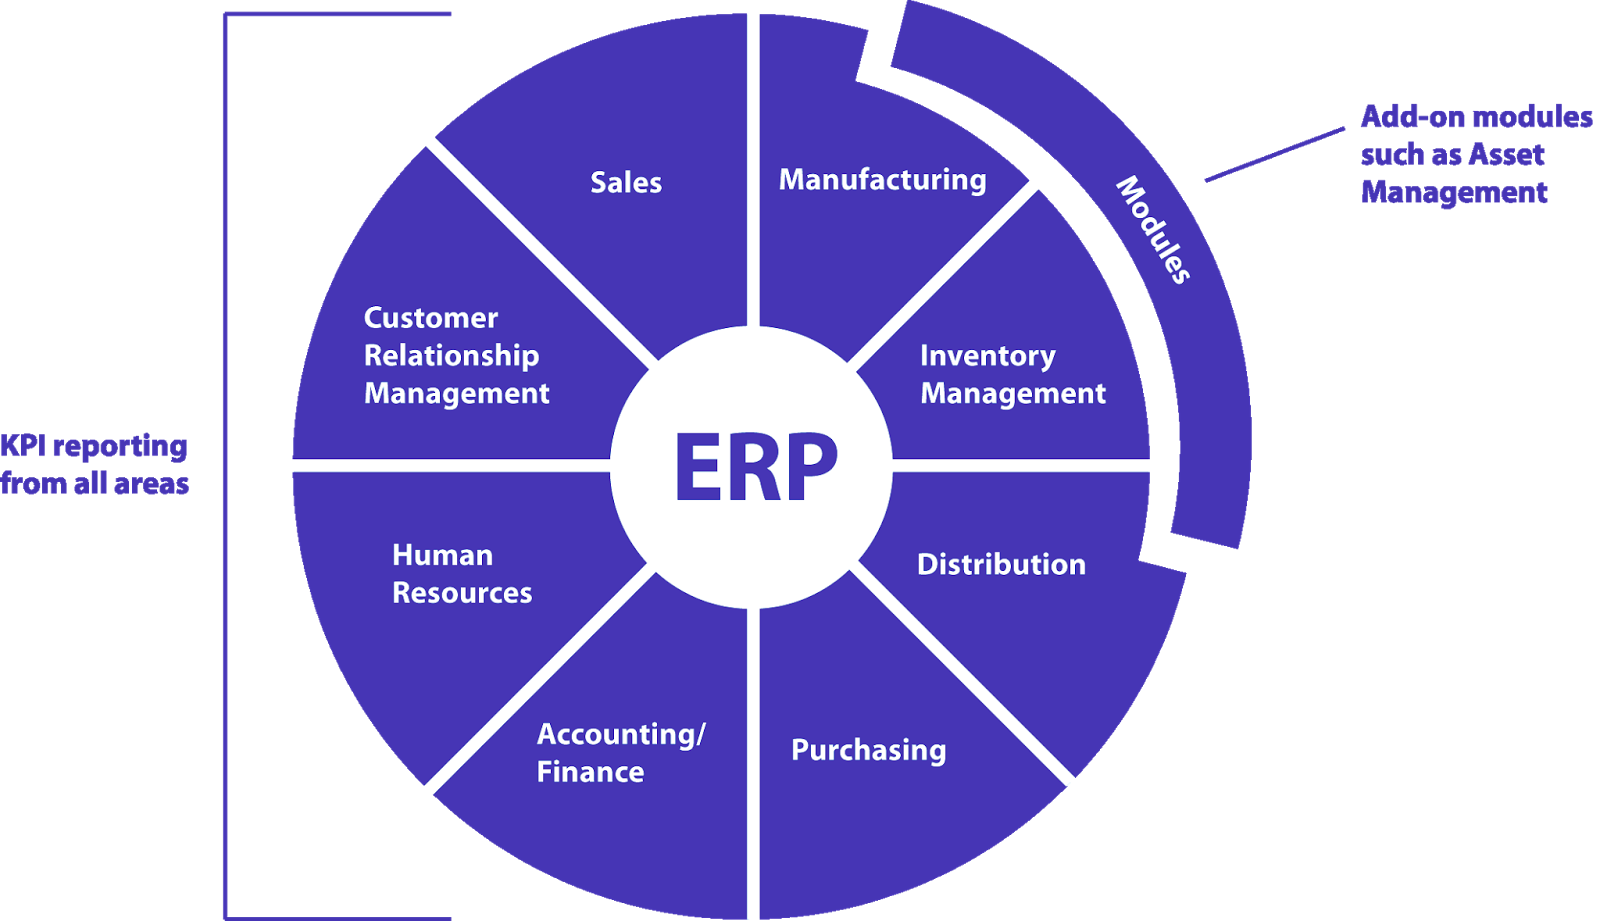 Inventory Management Model Diagram Split Receptacle Wiring Hrms Software Cctv System Vehicle Tracking Erp